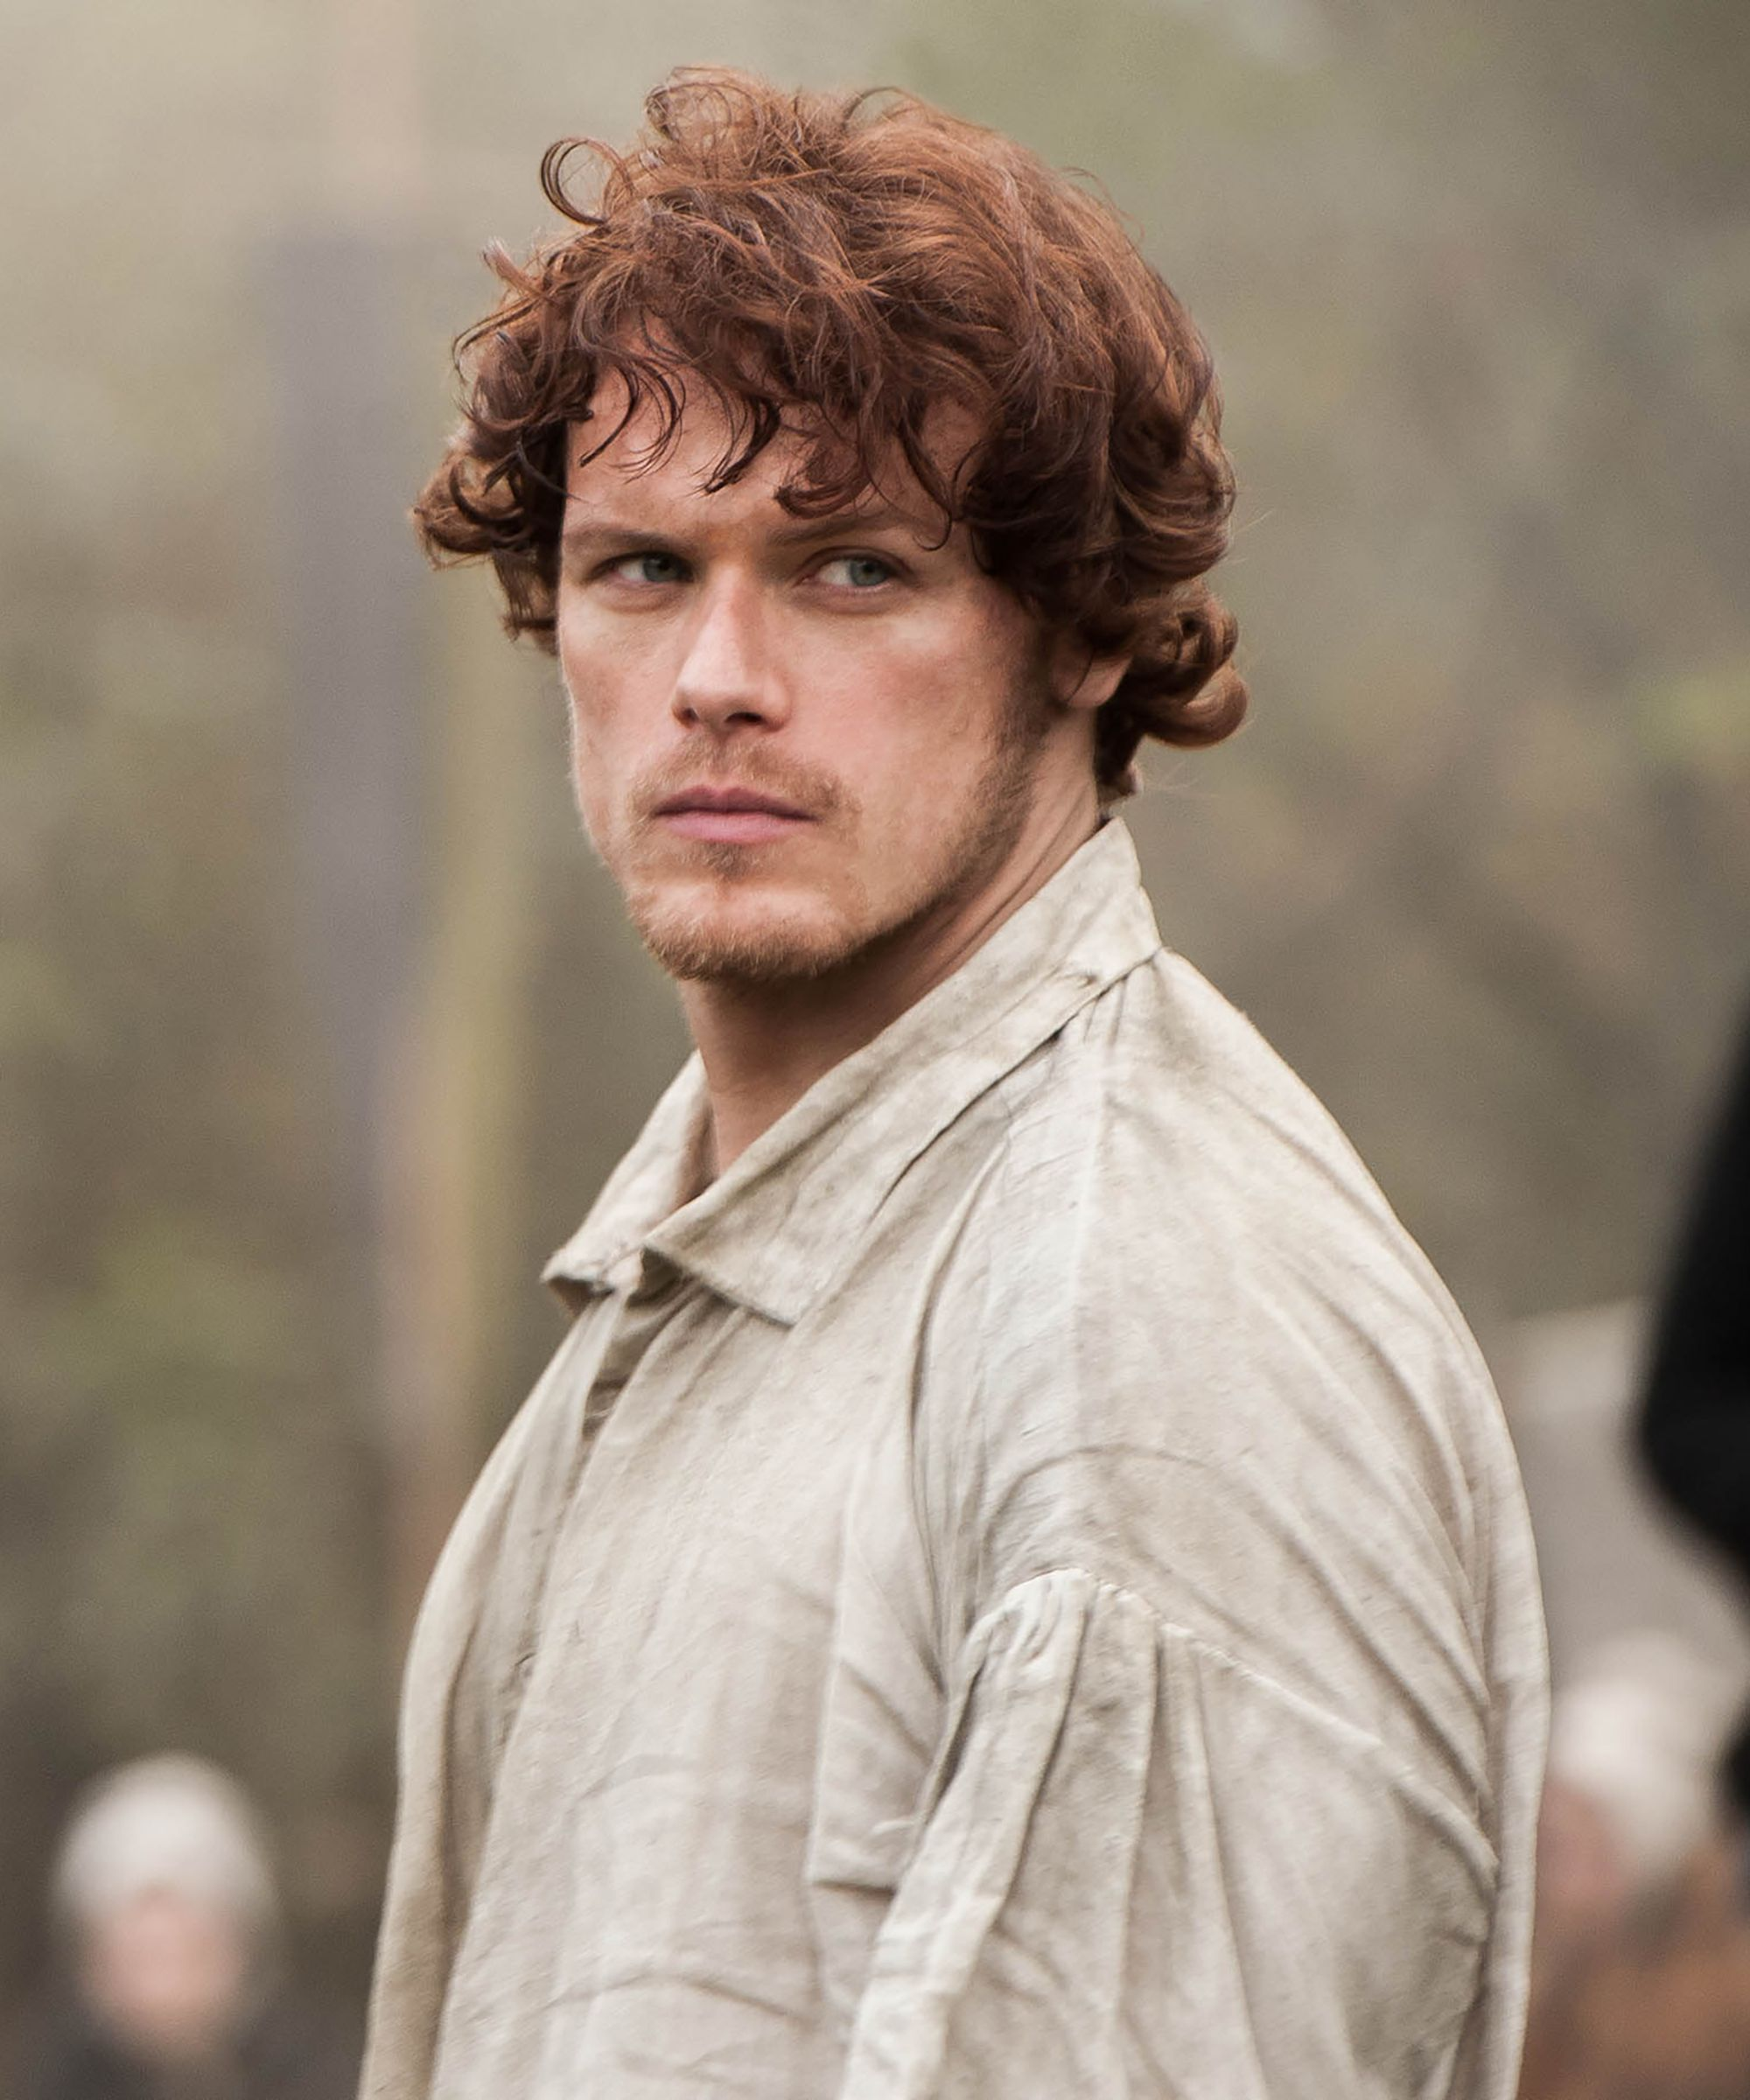 This Mysterious Outlander Scene Will Finally Be Explained #refinery29 http://www.refinery29.com/2016/10/128223/outlander-scene-jamie-claire-time-travel-explained